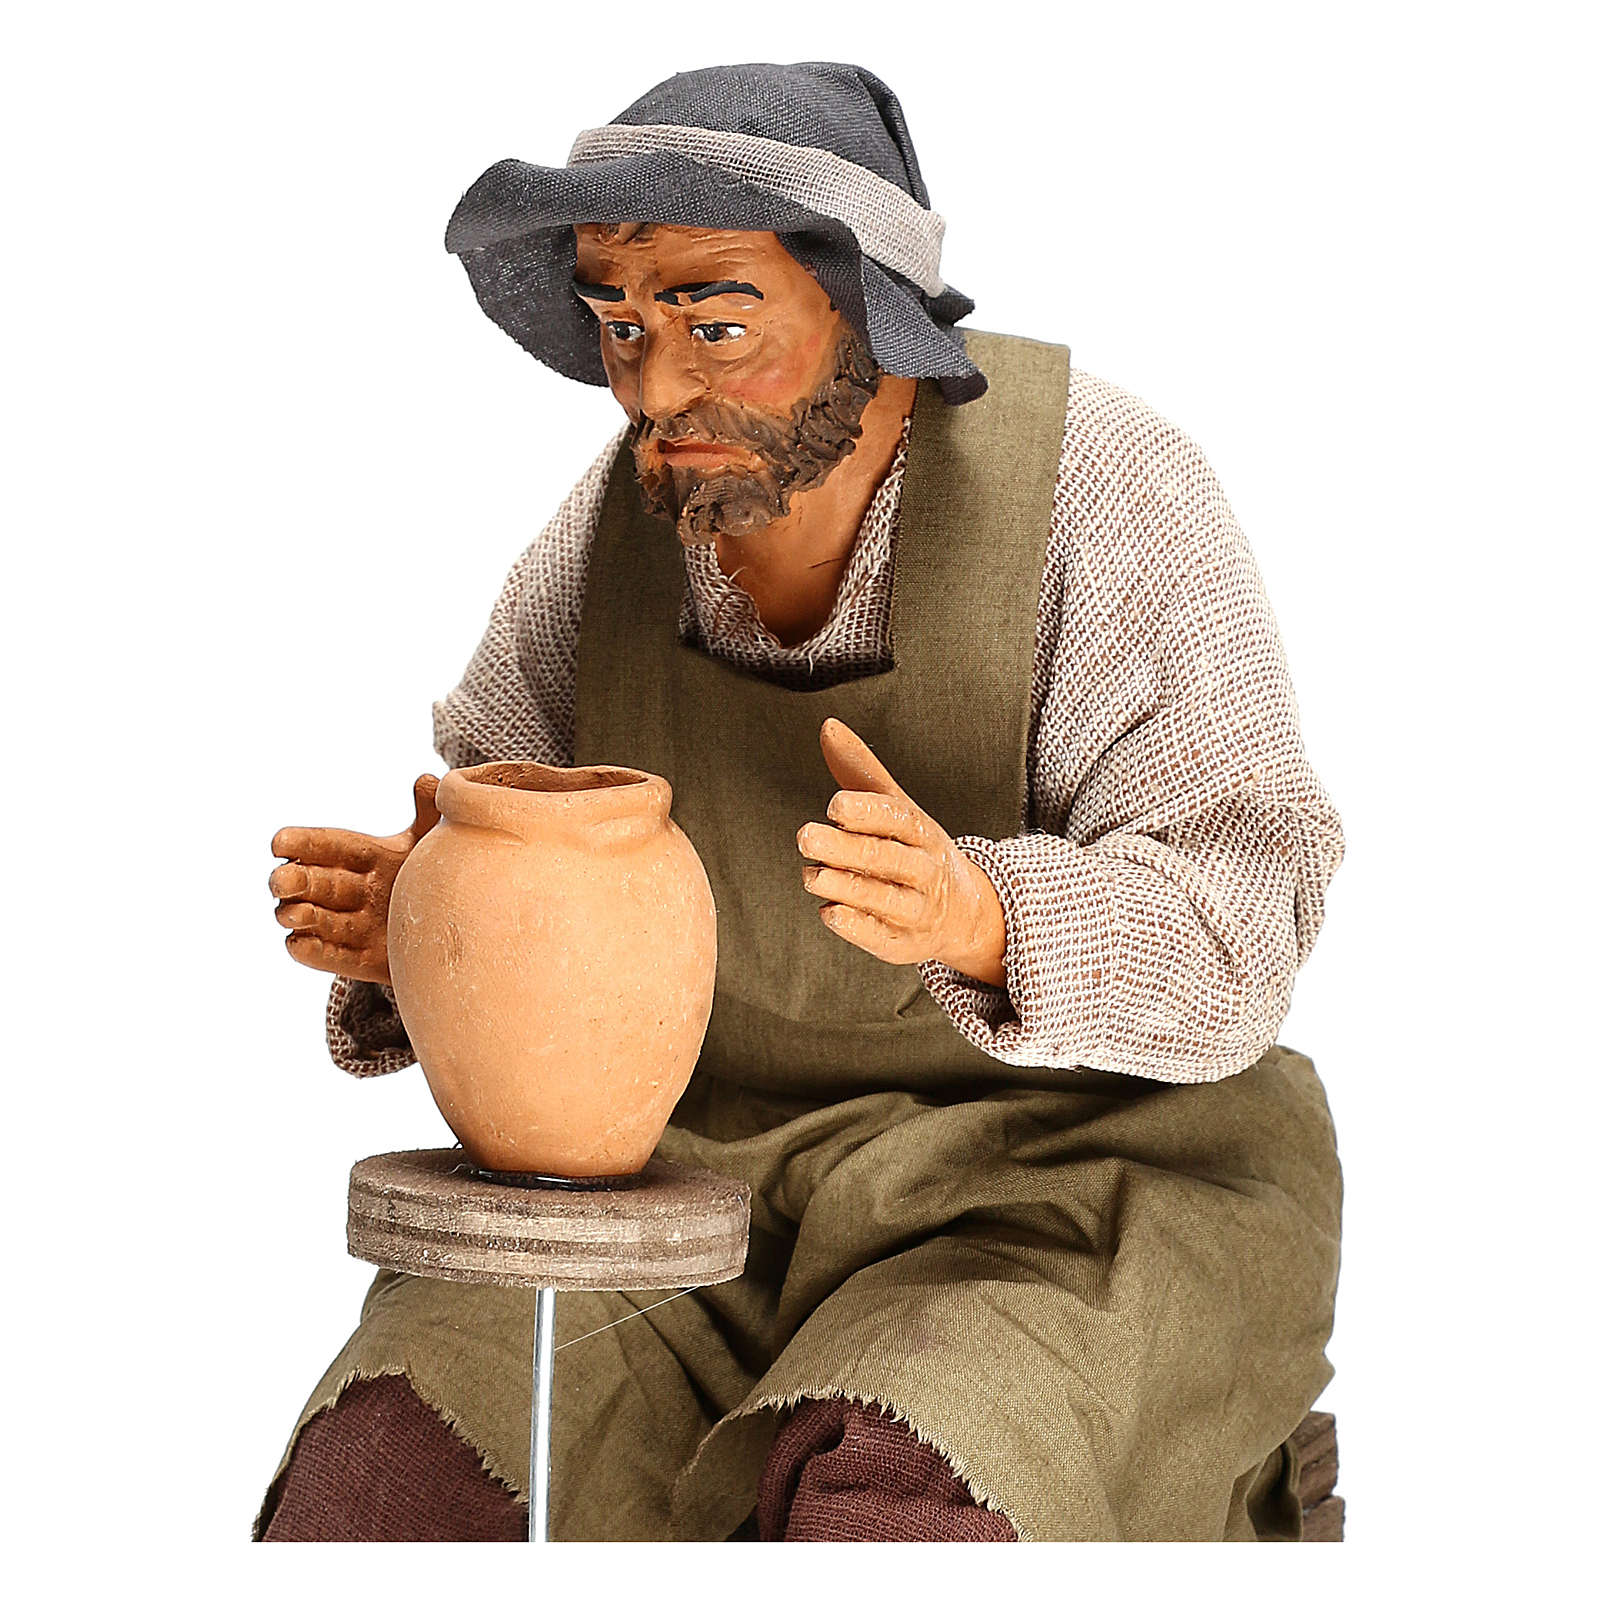 Animated Neapolitan Nativity figurine Man working with ceramics 30cm 4